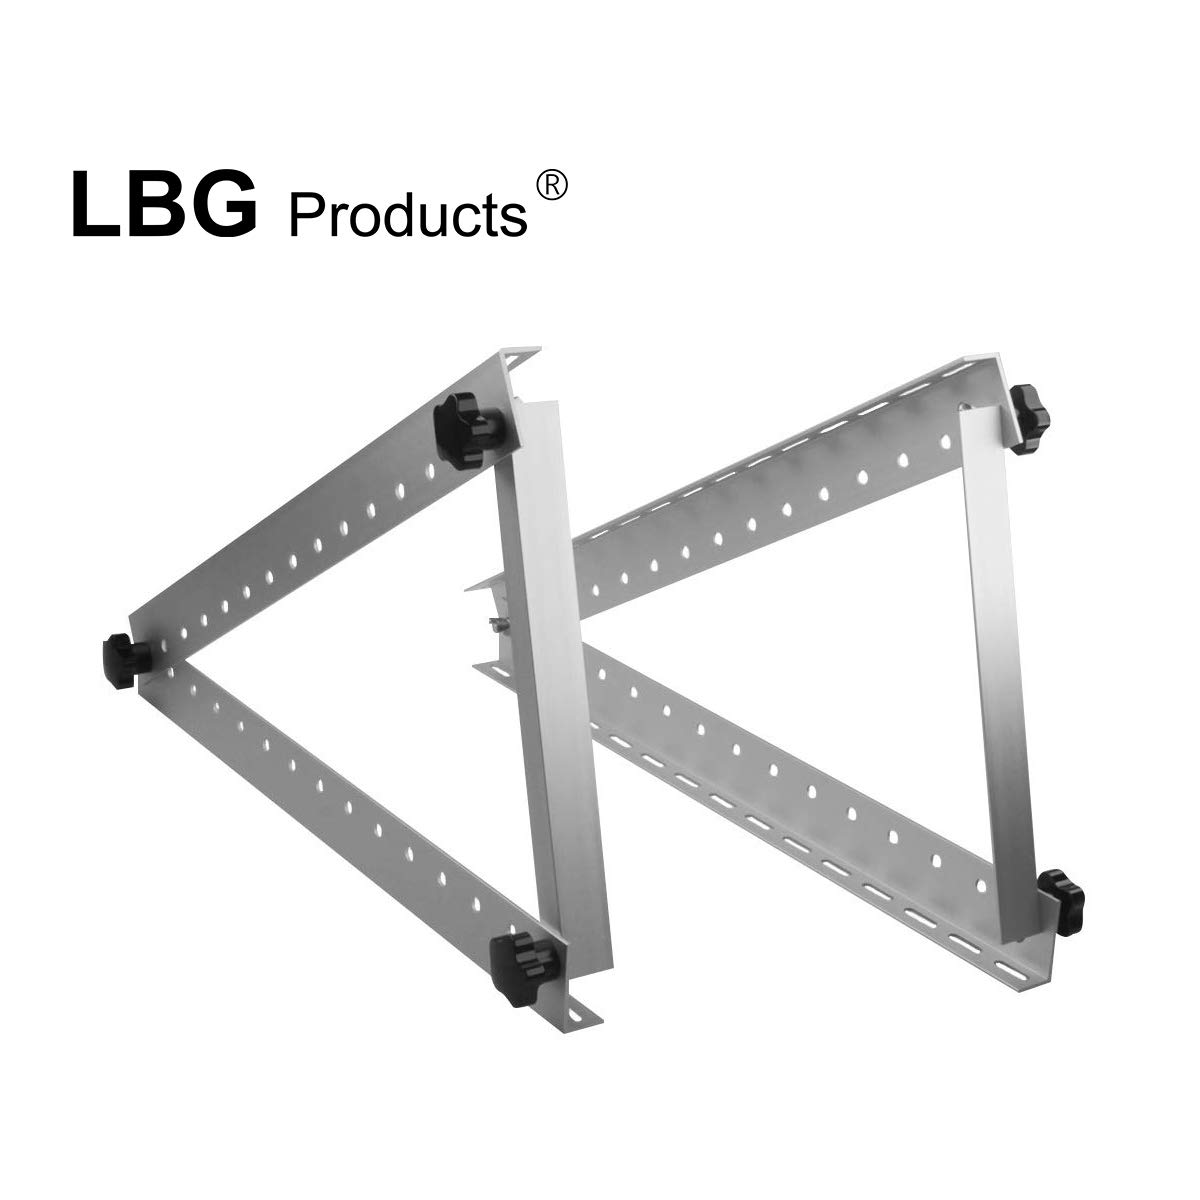 LBG Products Adjustable Solar Panel Mount Brackets with Foldable Tilt Legs Support up to 100 Watt Solar Panel for Roof, RV,Boat and Any Flat Surface Off Grid